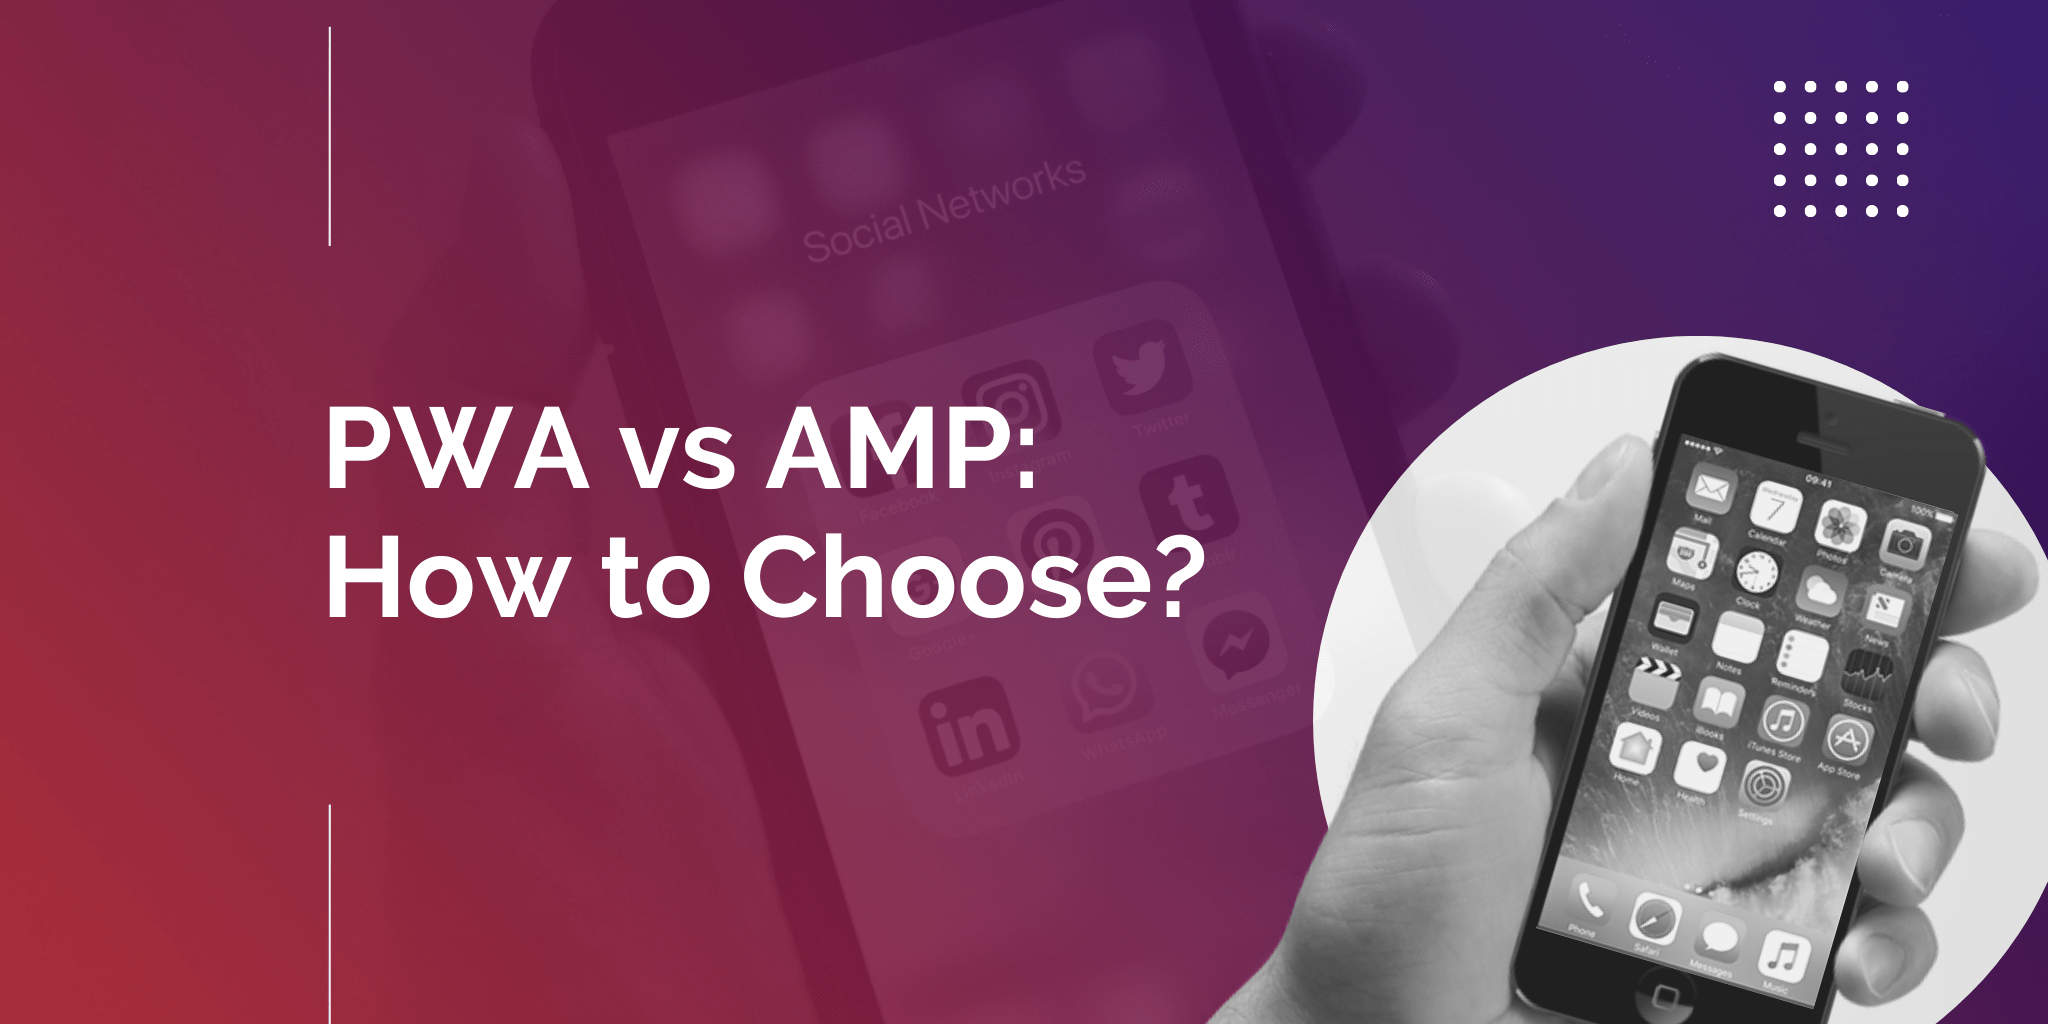 Progressive Web Apps vs Accelerated Mobile Pages: What's the Difference and Which is Best for You?